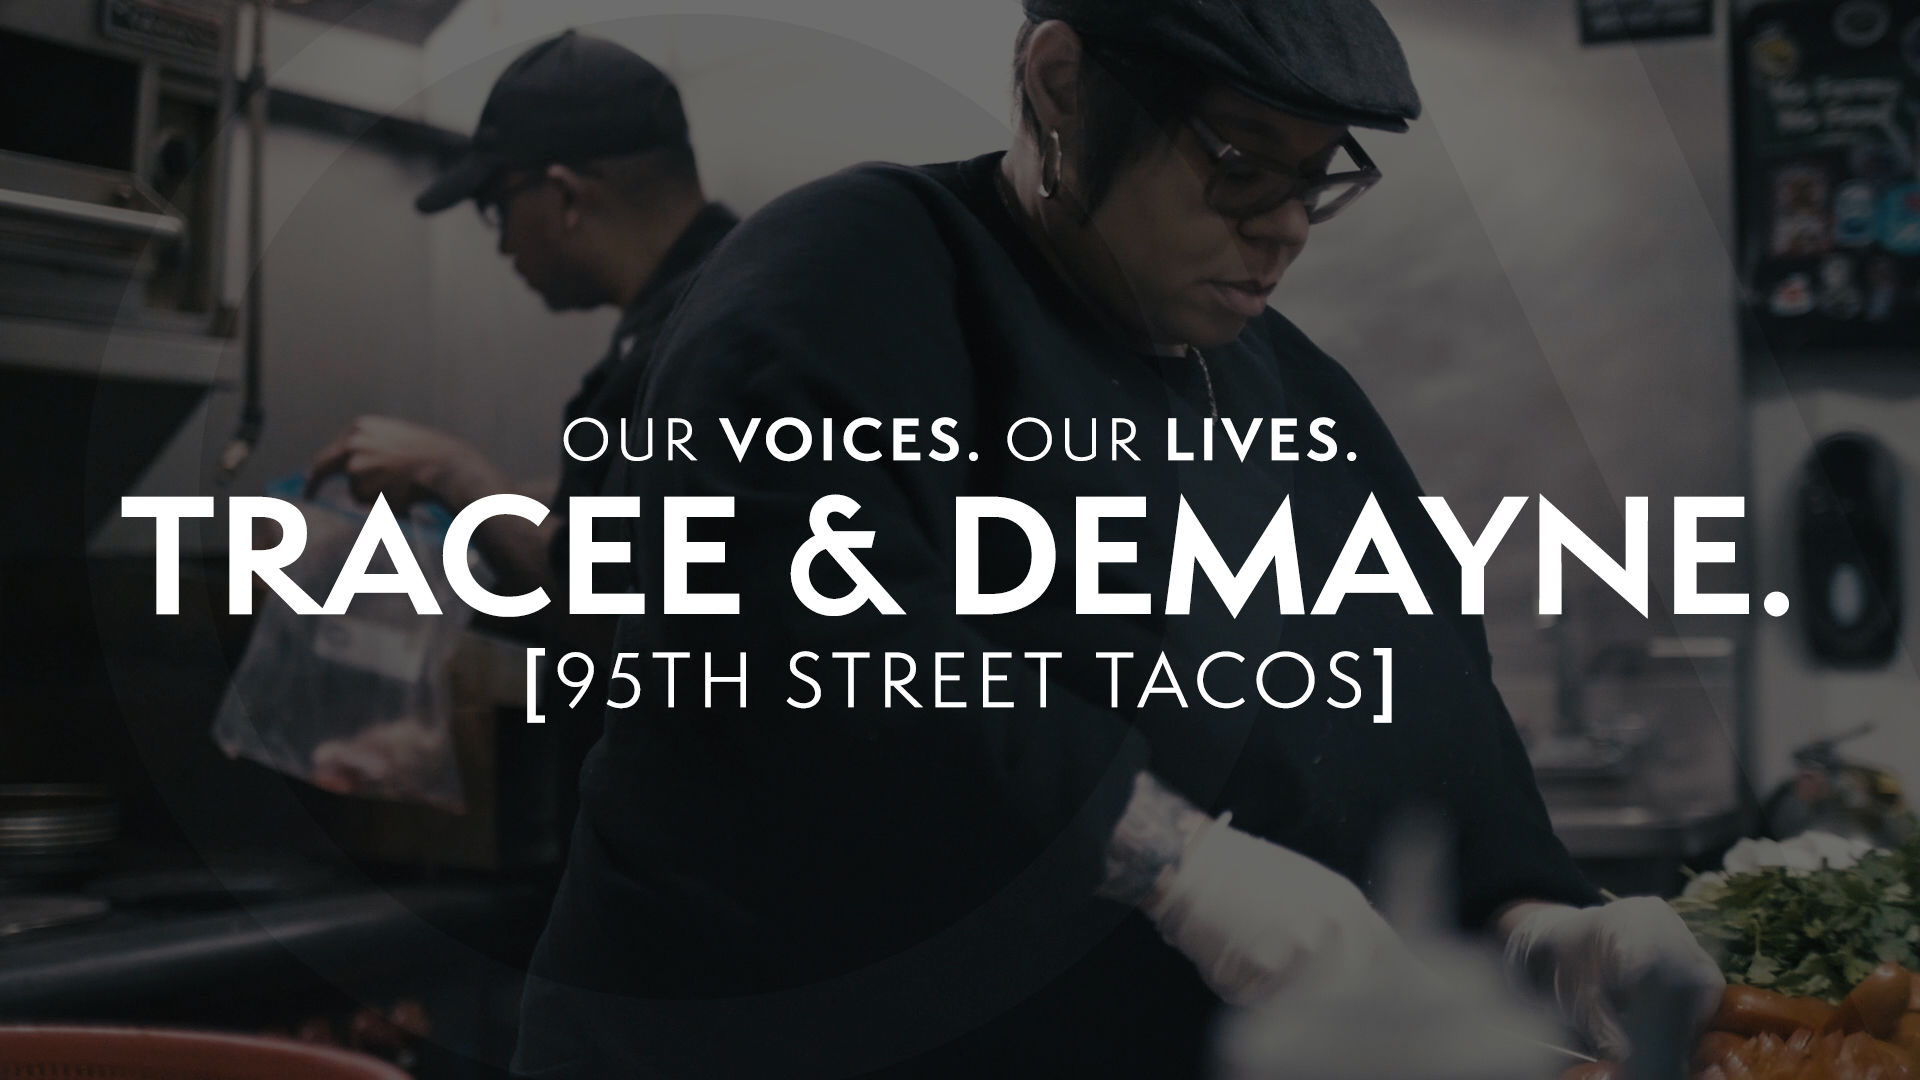 Our Voices. Our Lives. presents 95TH STREET TACOS.